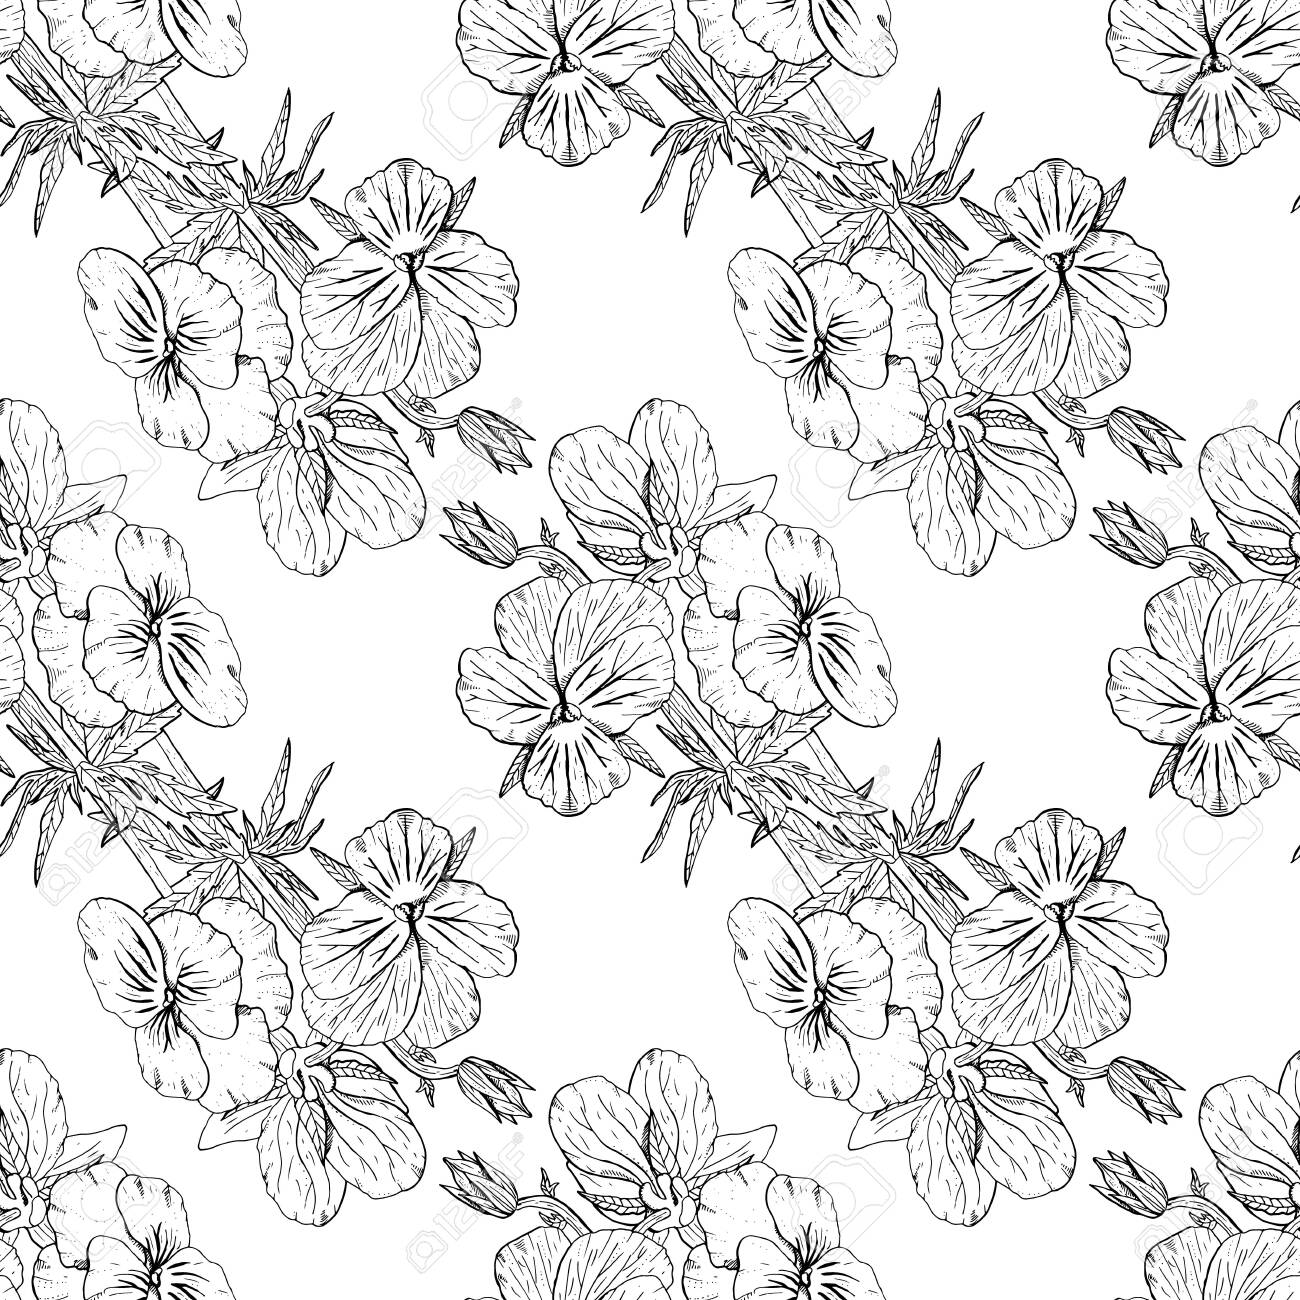 Monochrome floral seamless pattern with hand drawn pansy flowers on white background. Stock vector - 152795506